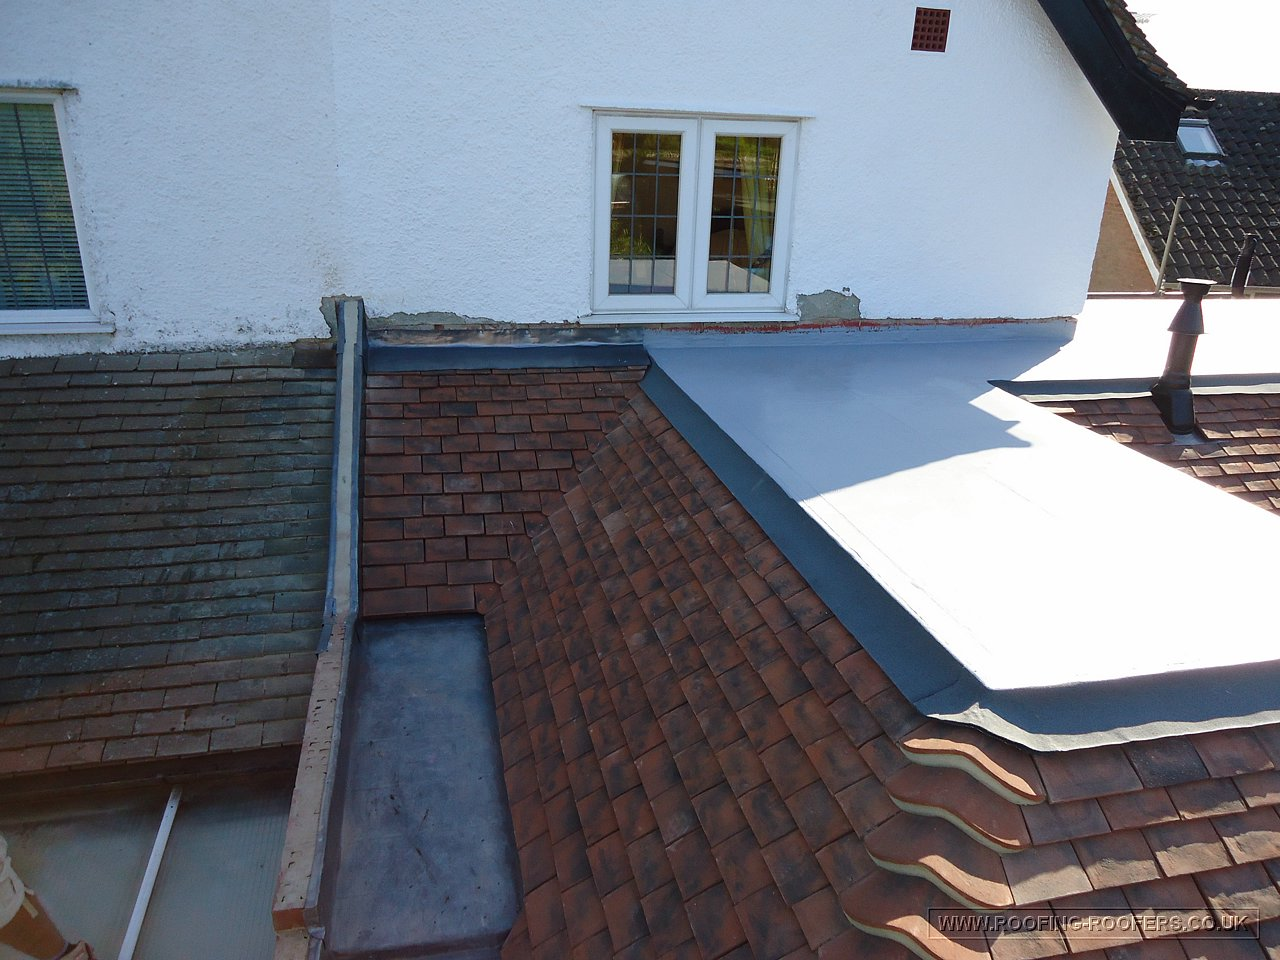 Flat roofs roofing and building repairs specialists page 2 for Flat tile roof